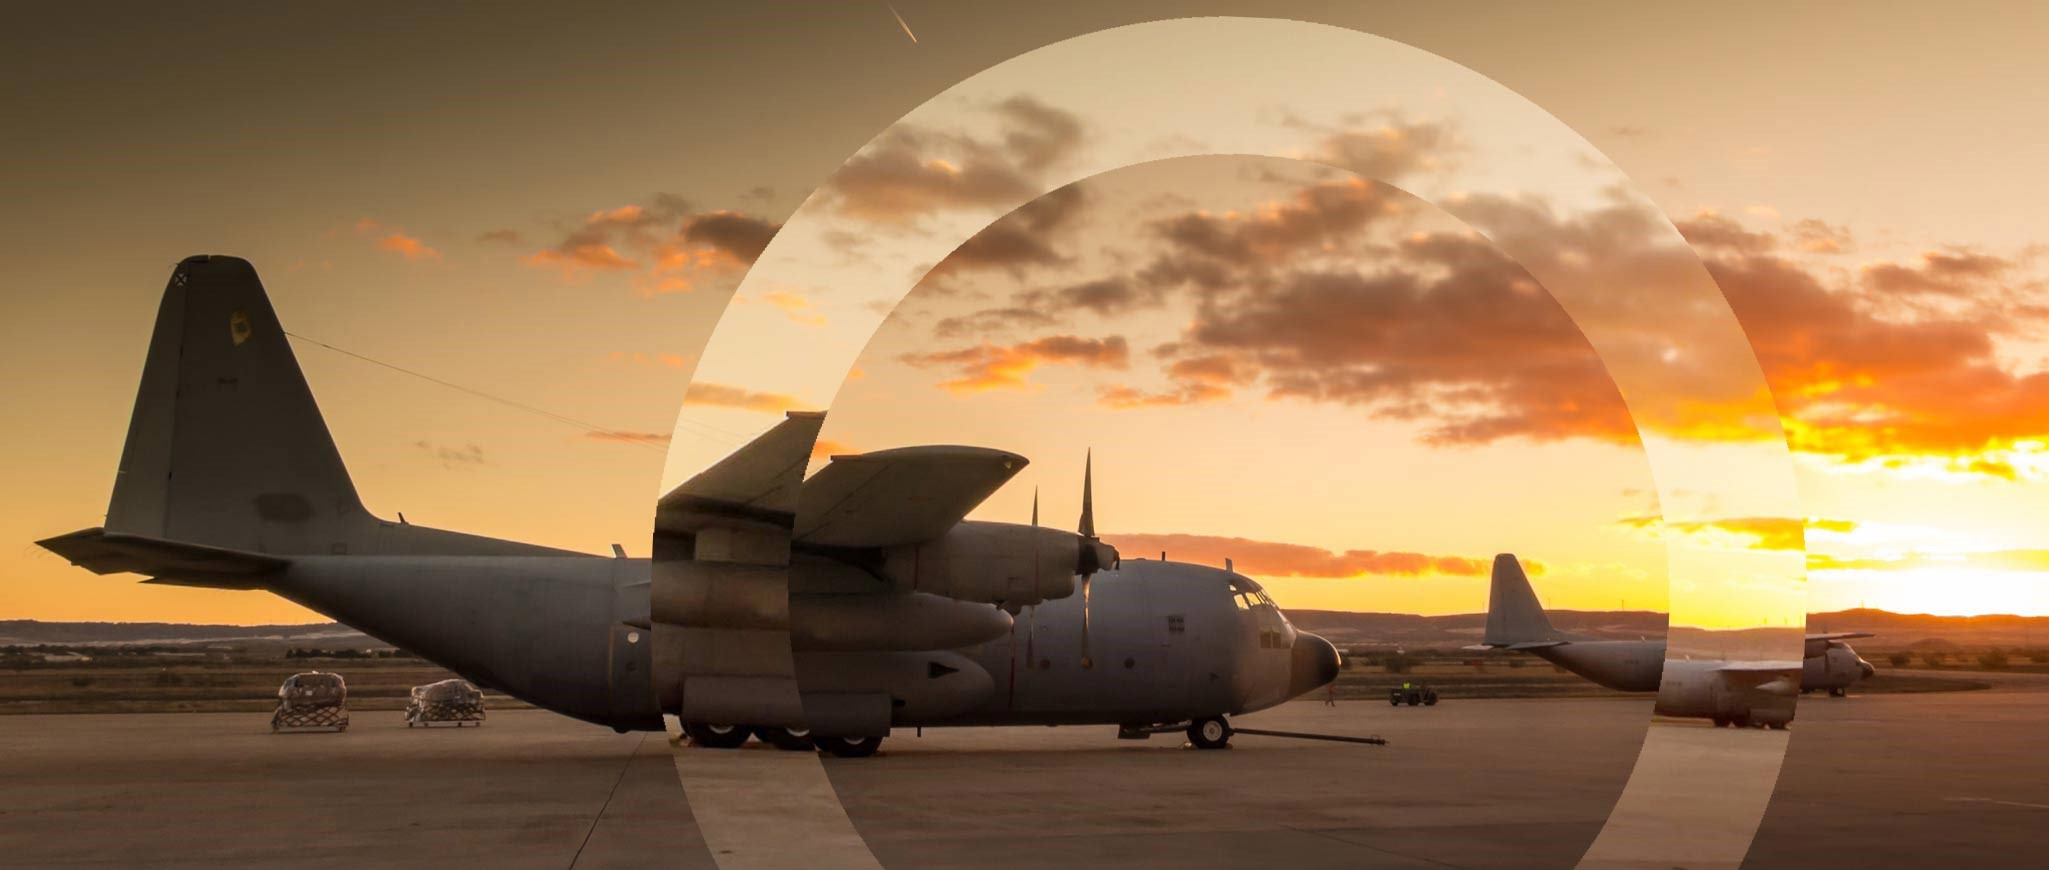 Eclipse Global Connectivity defense aviation